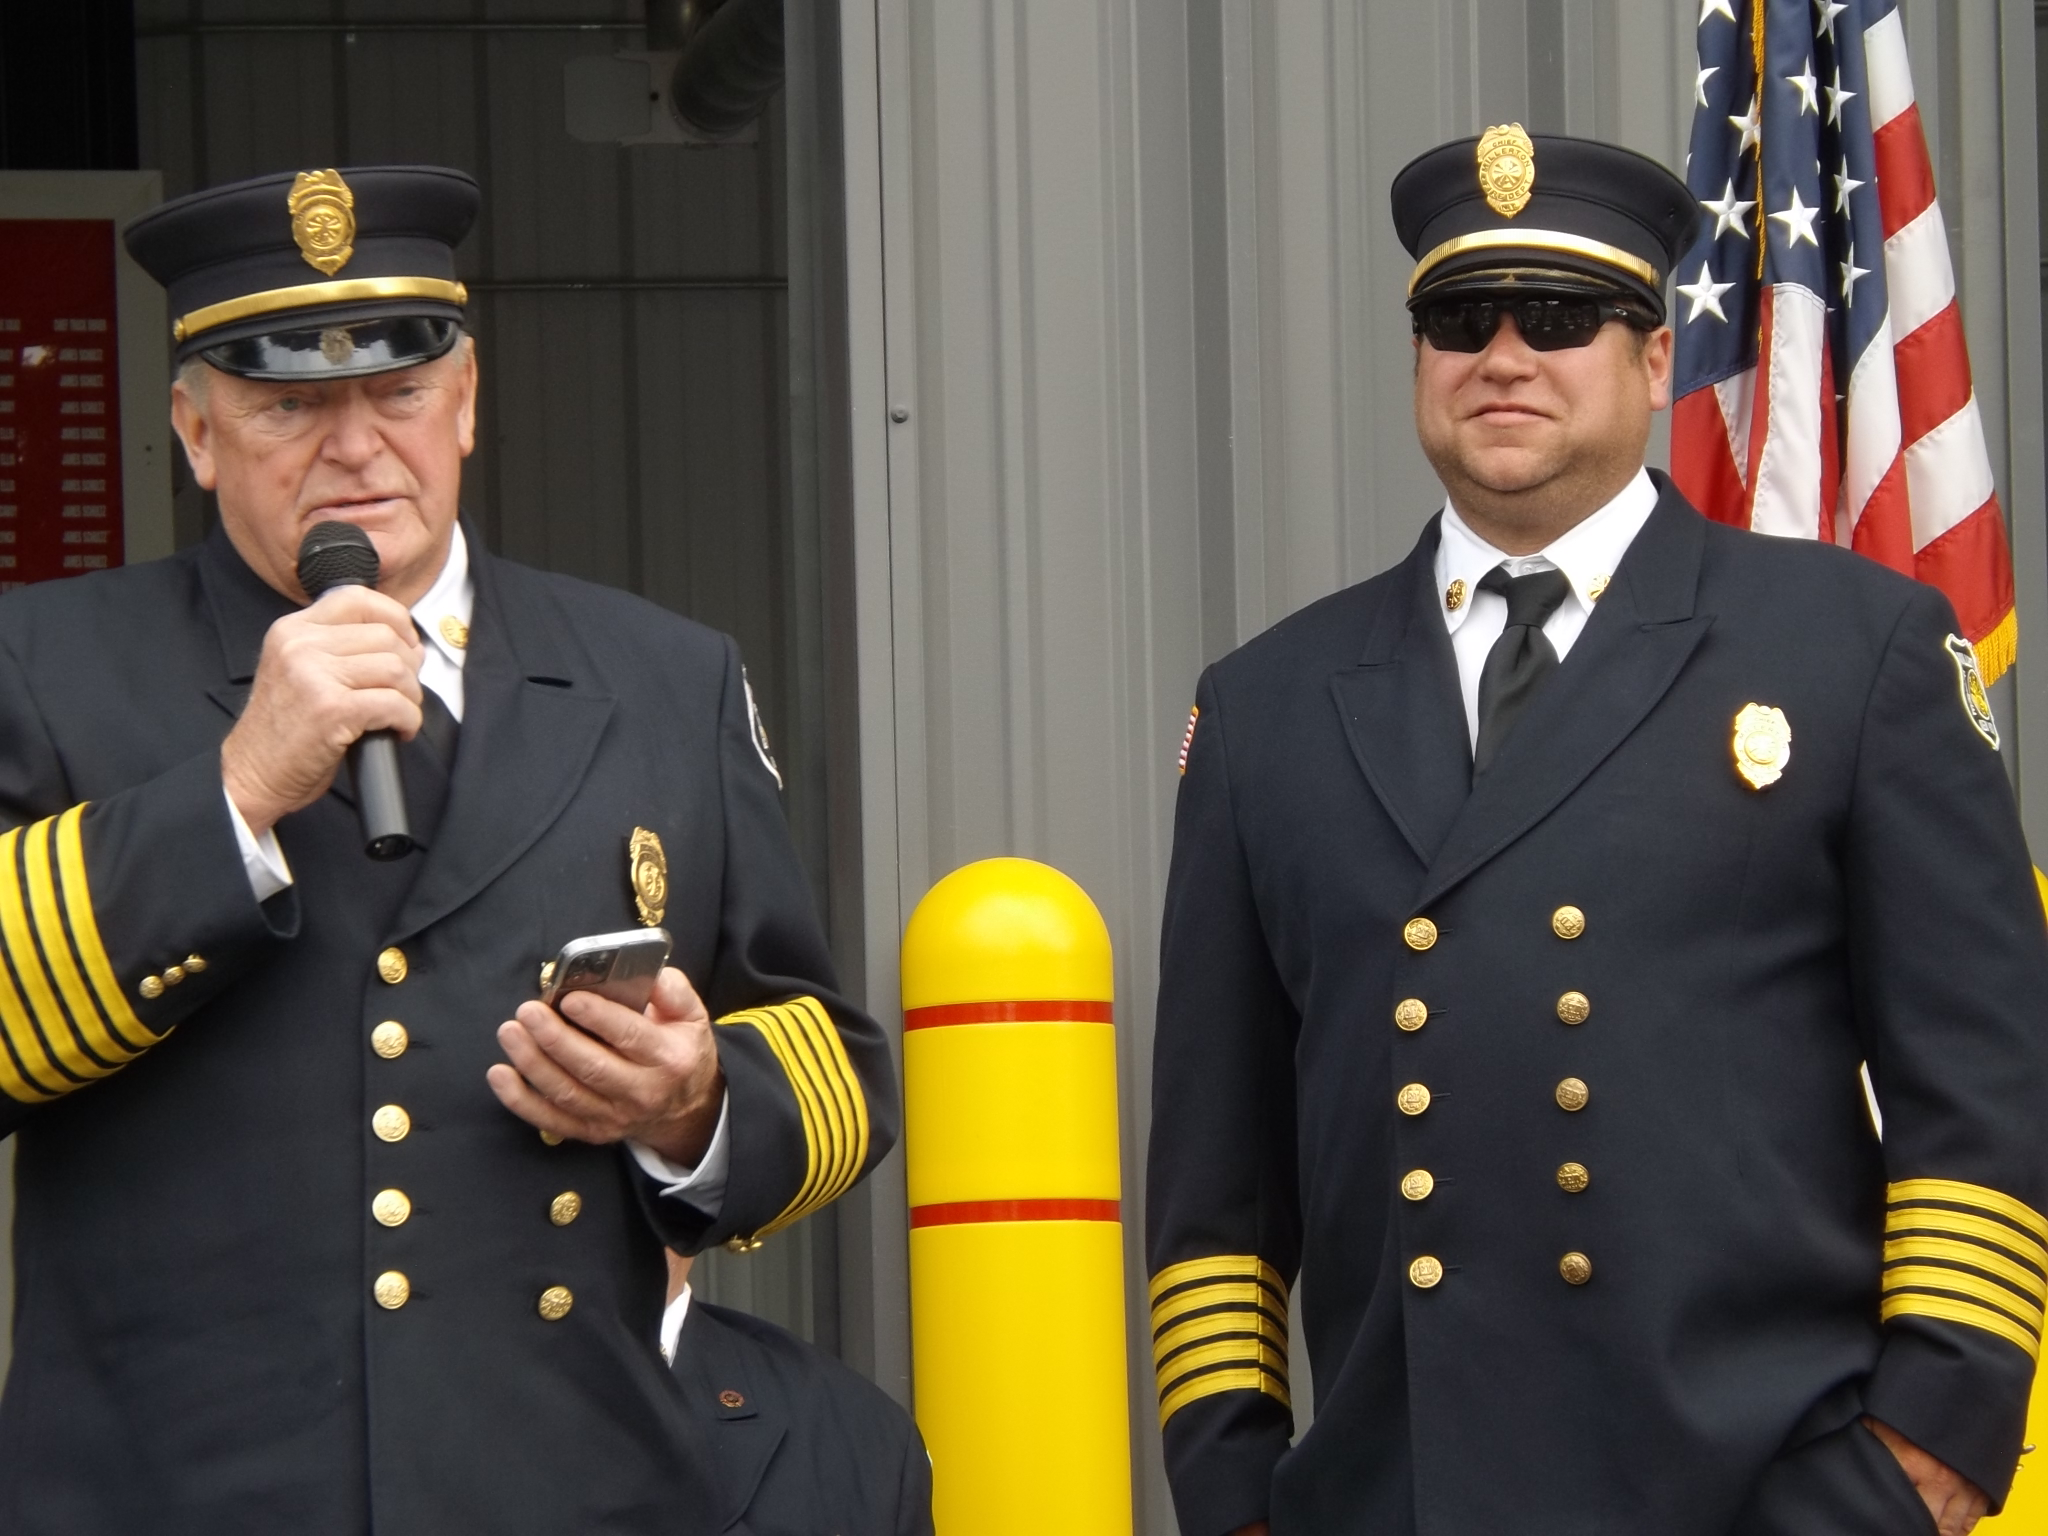 <strong>From left, Millerton Fire Company President Lenny Morrison, with help from Fire Chief Jason Watson, announced the dedication of plaques to be hung on the company's fire equipment in honor of company members past and present. <em>Photo by Kaitlin Lyle.</em></strong>